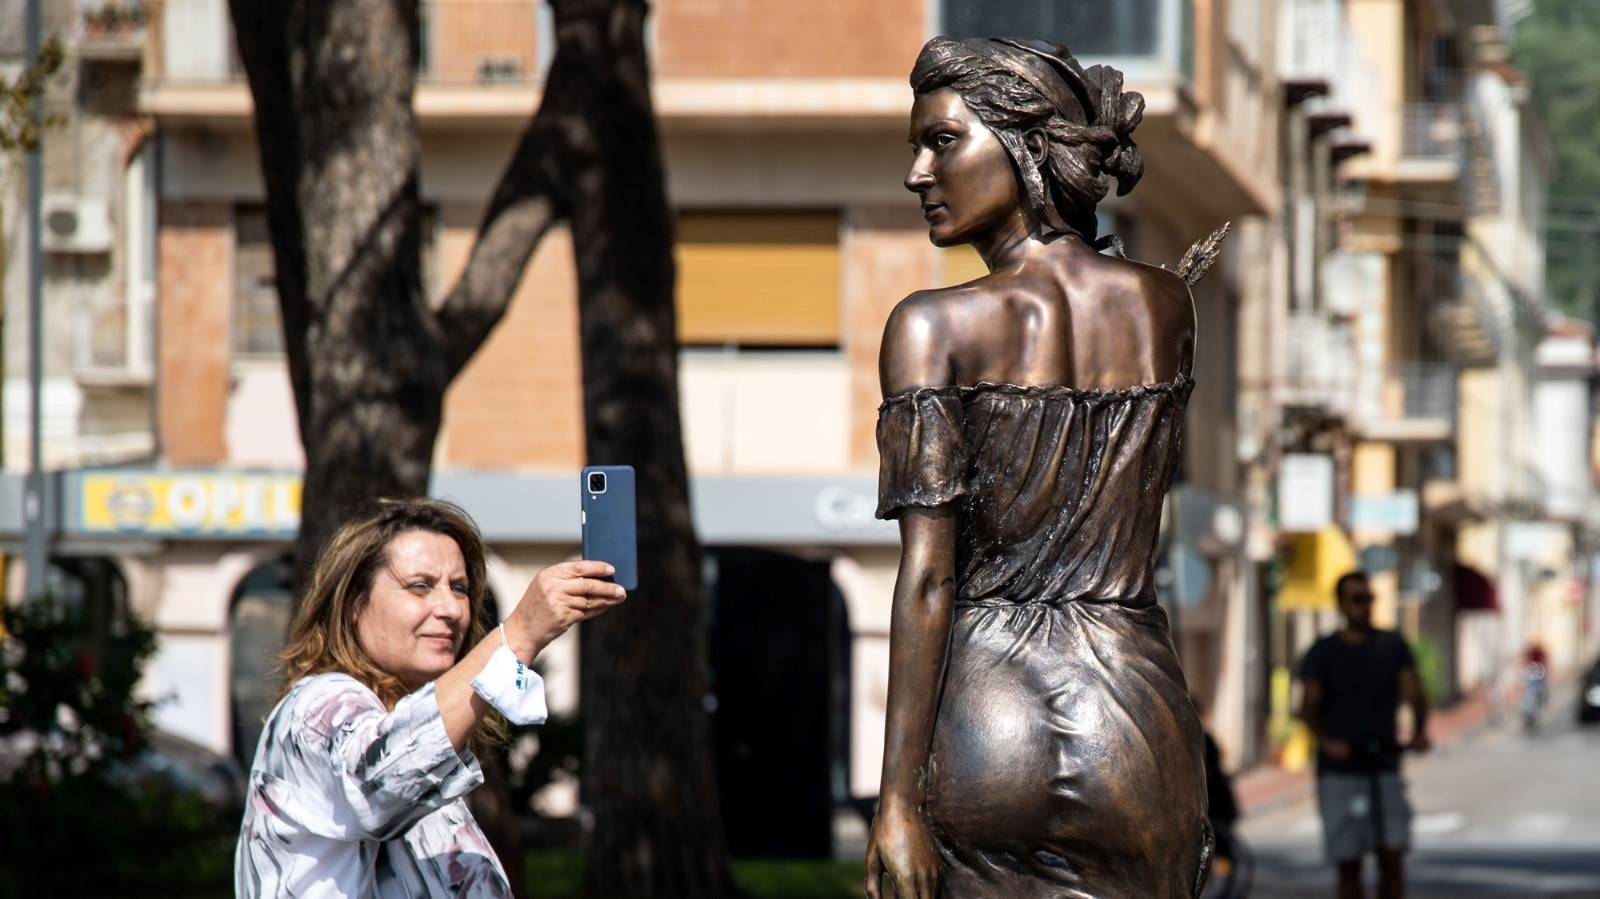 'Sexist' or 'impeccable'? Statue divides Italy